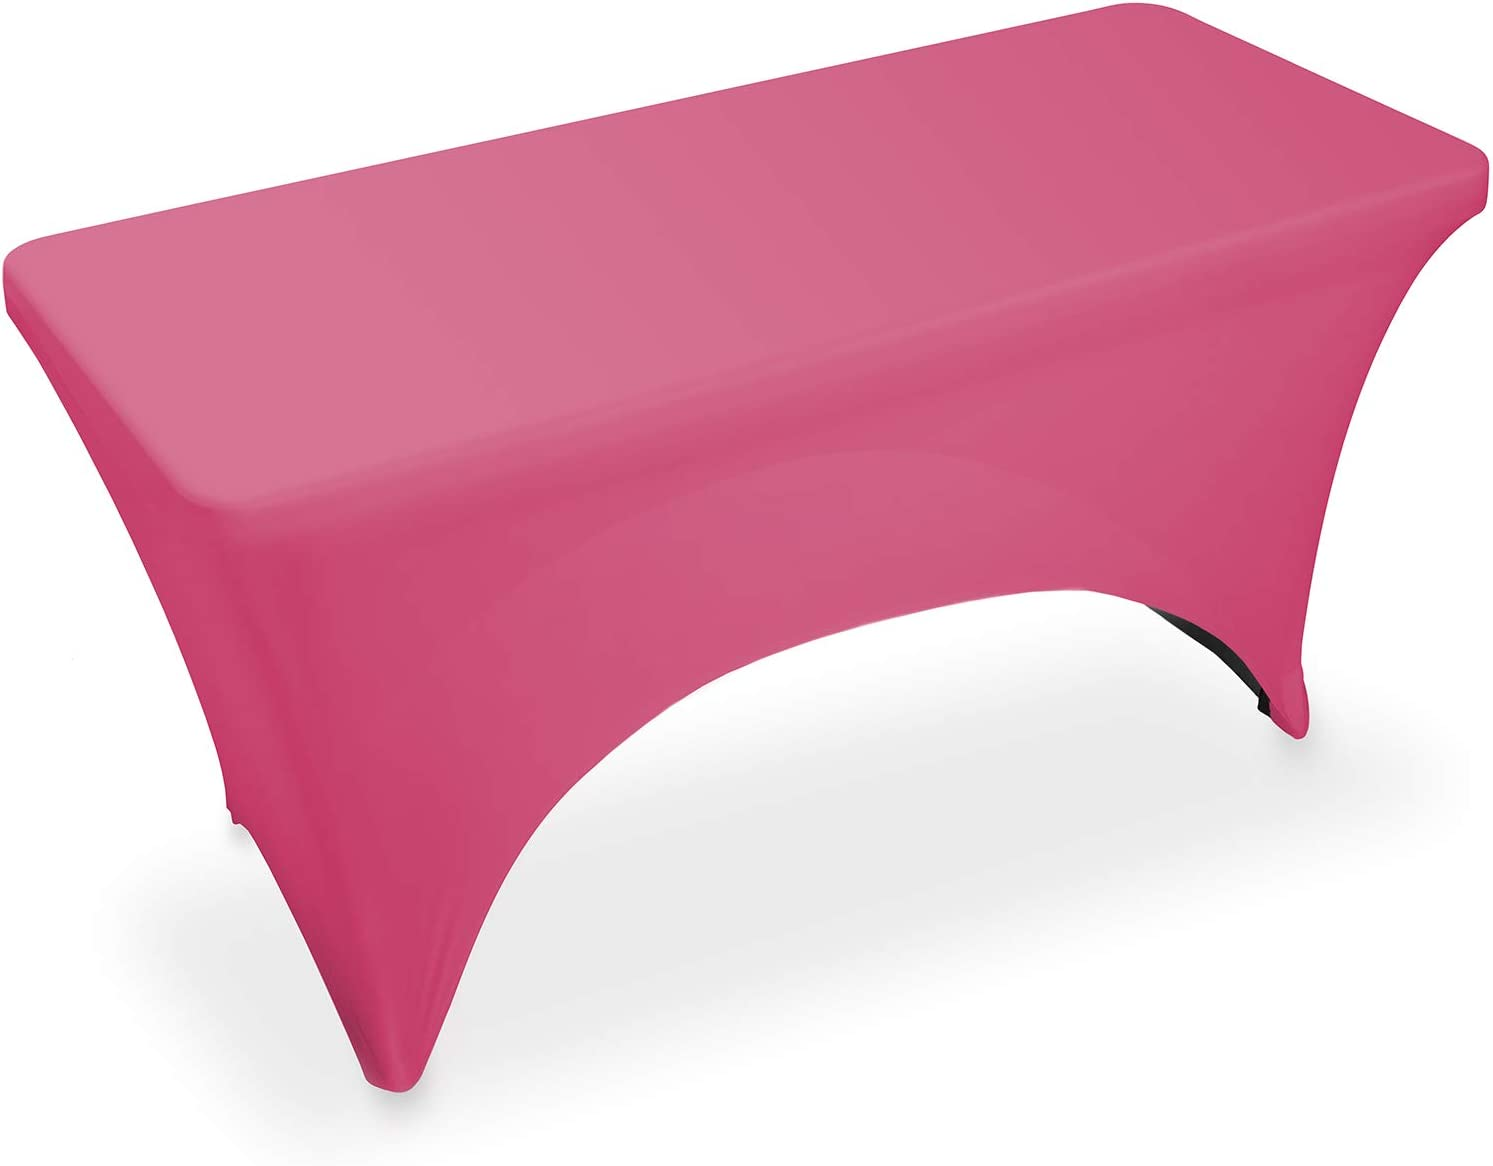 """Lann's Linens - 4' Fitted Stretch Tablecloth for 48"""" x 24"""" Rectangular Table - Wedding/Banquet/Trade Show - Spandex Cloth Fabric Cover - Fuchsia"""